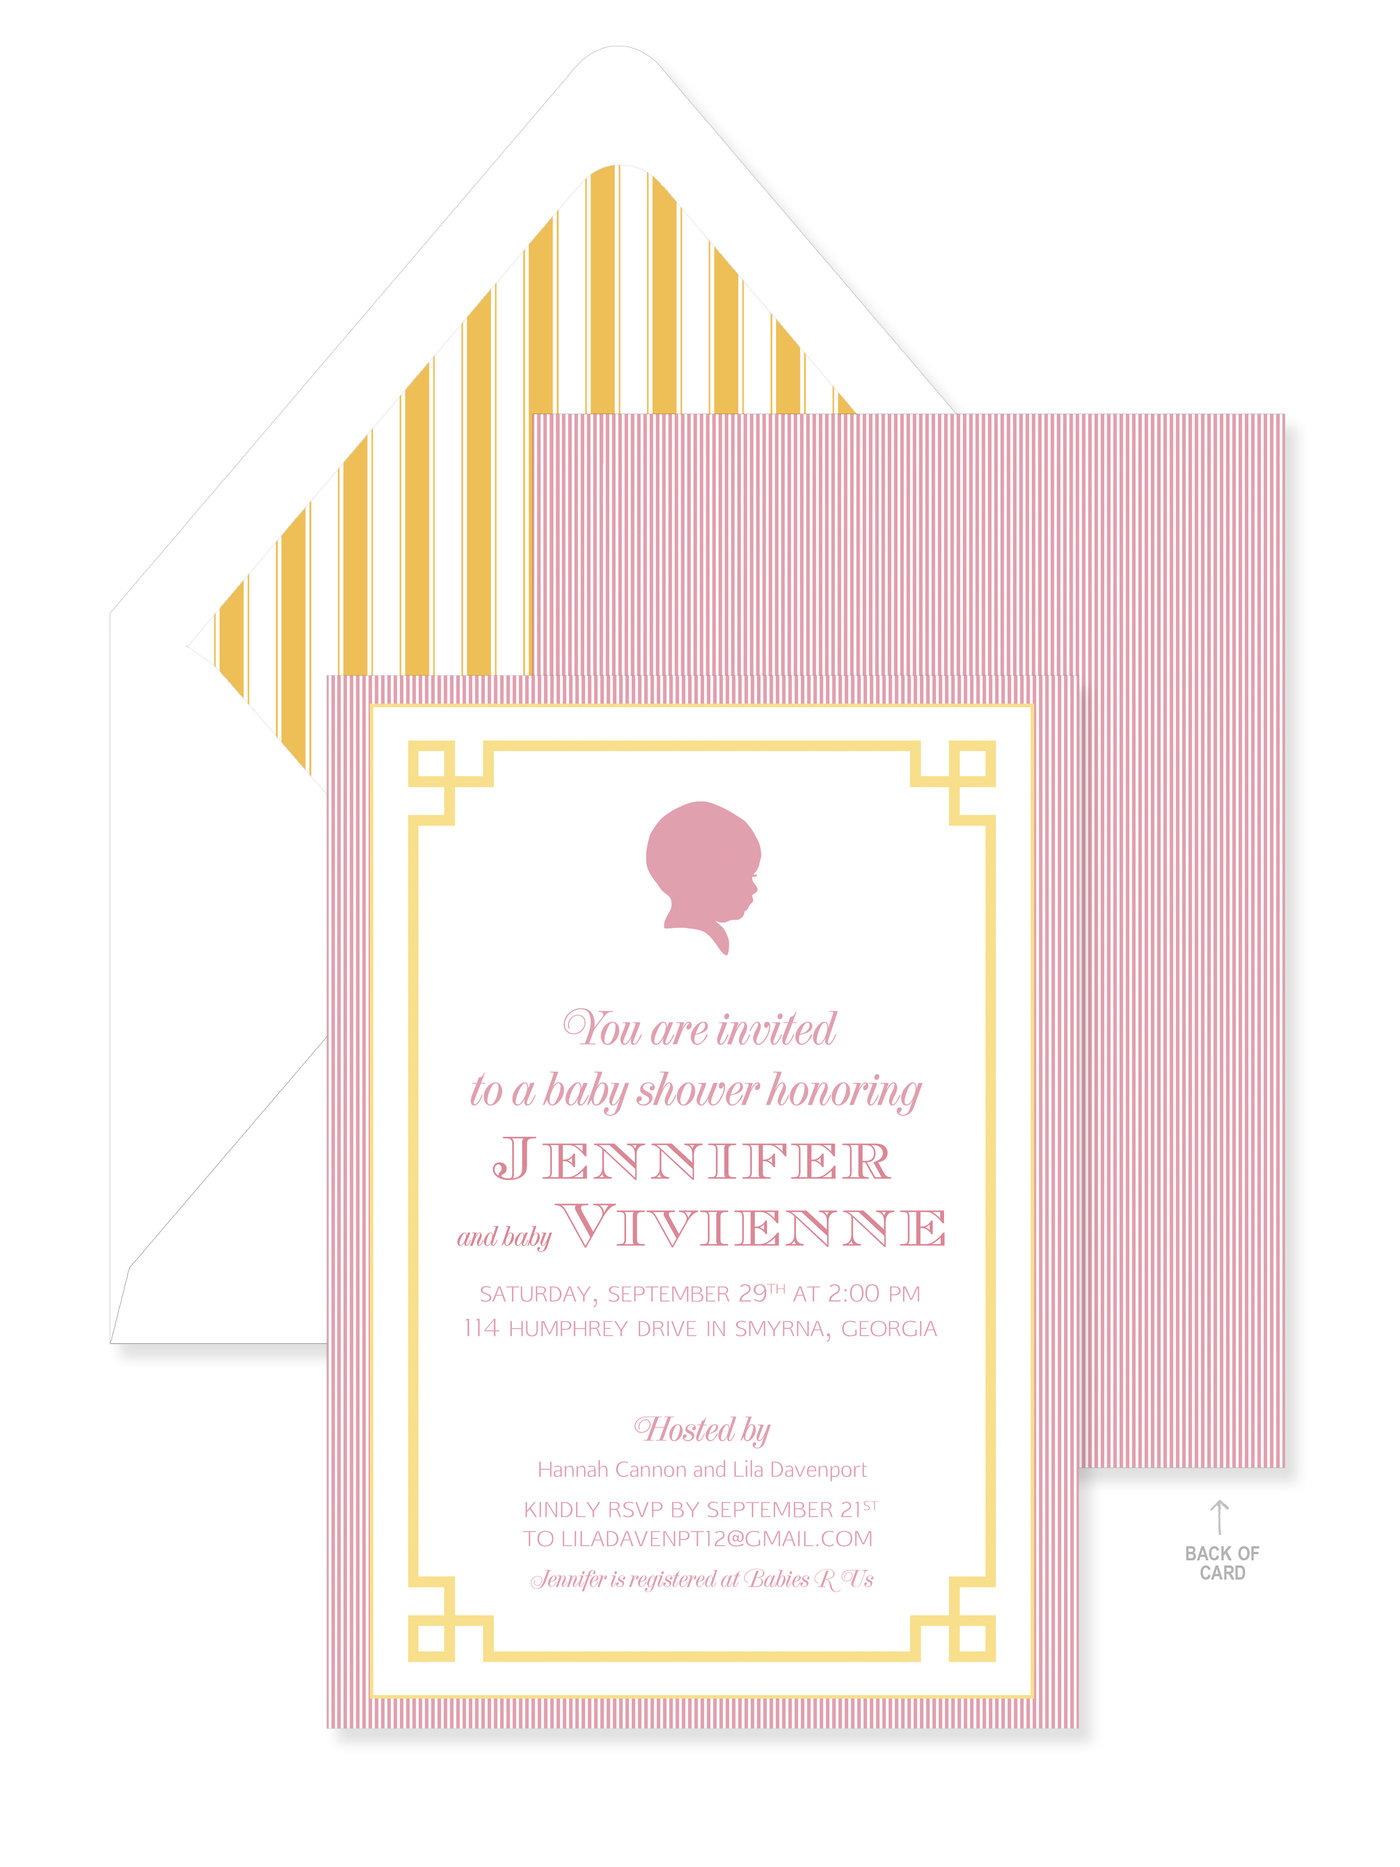 Silhouette baby shower invitation by lila cannon at coroflot filmwisefo